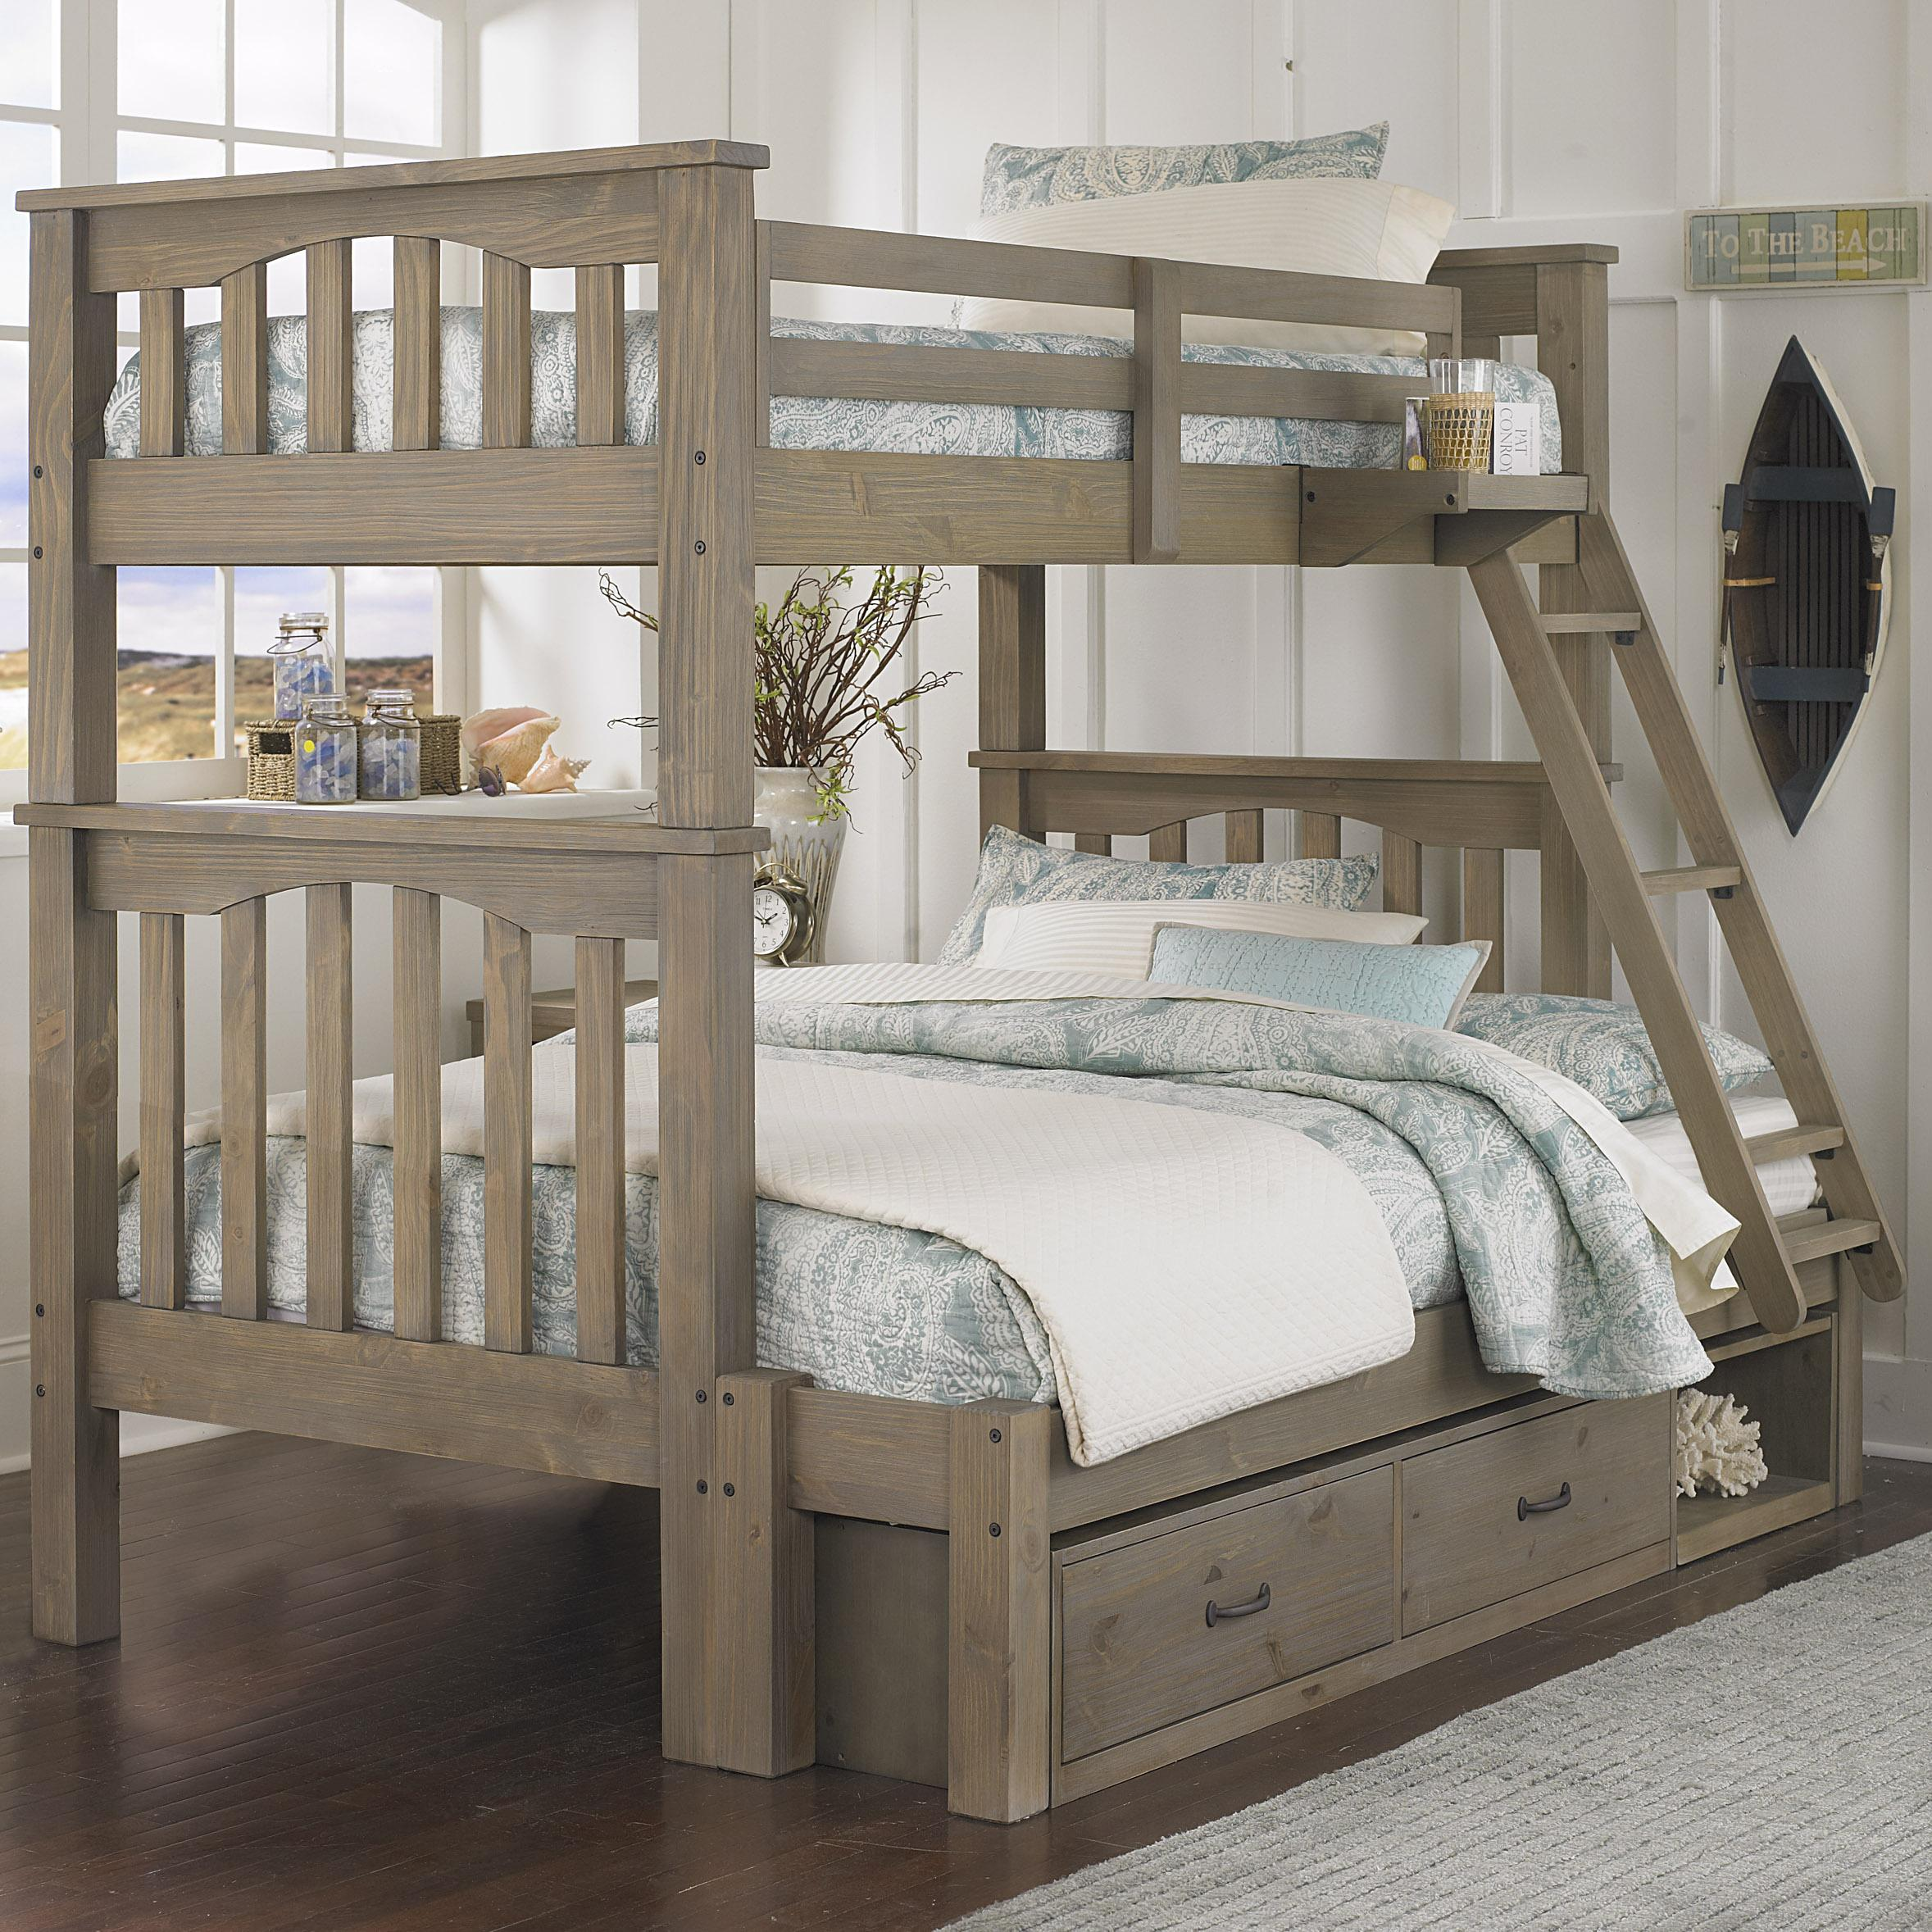 Highlands Twin Over Full Bunk Bed with Storage by NE Kids at Stoney Creek Furniture